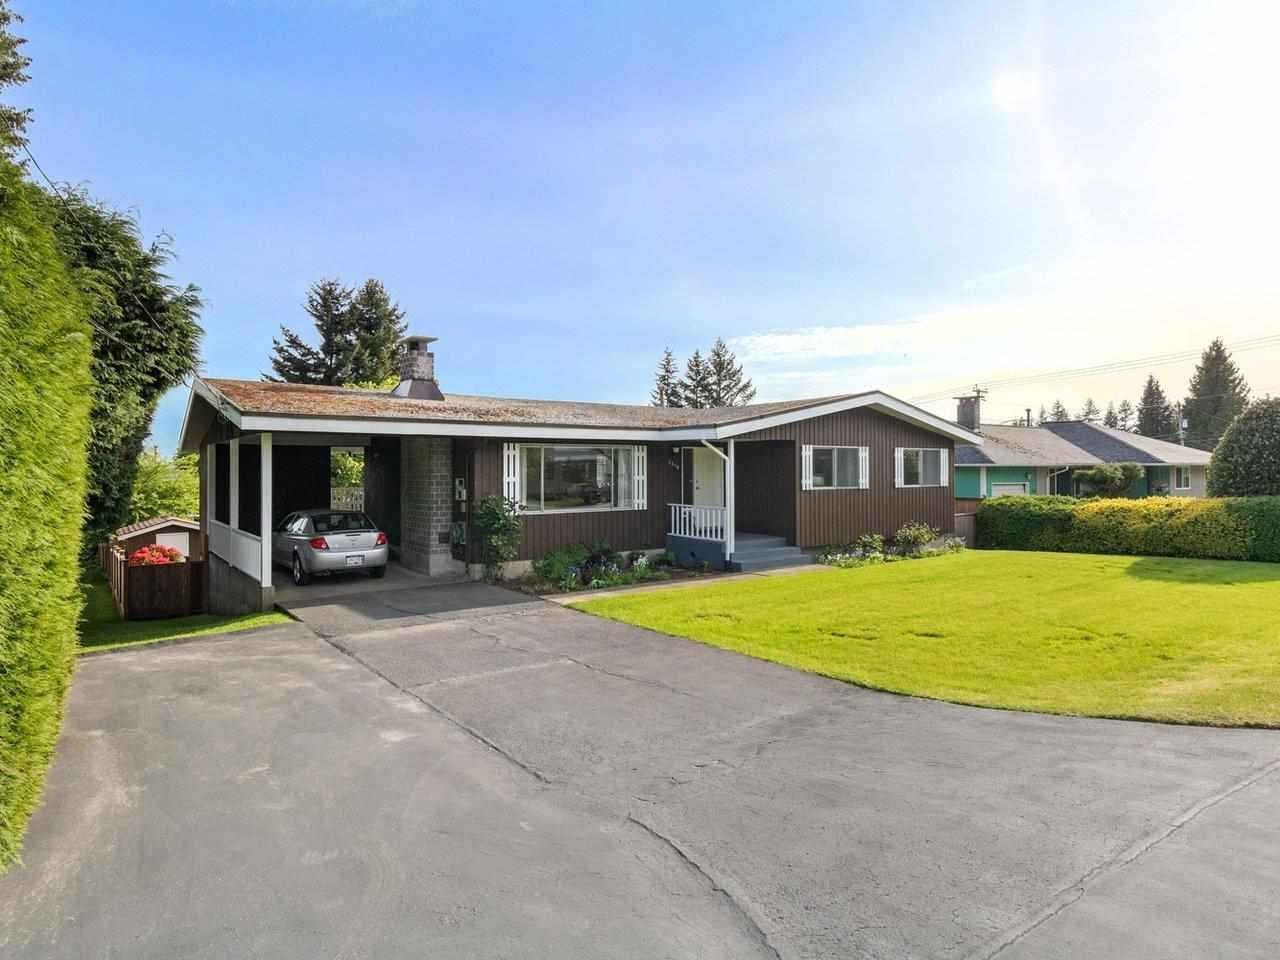 Photo 2: Photos: 1510 CHARLAND Avenue in Coquitlam: Central Coquitlam House for sale : MLS®# R2577681